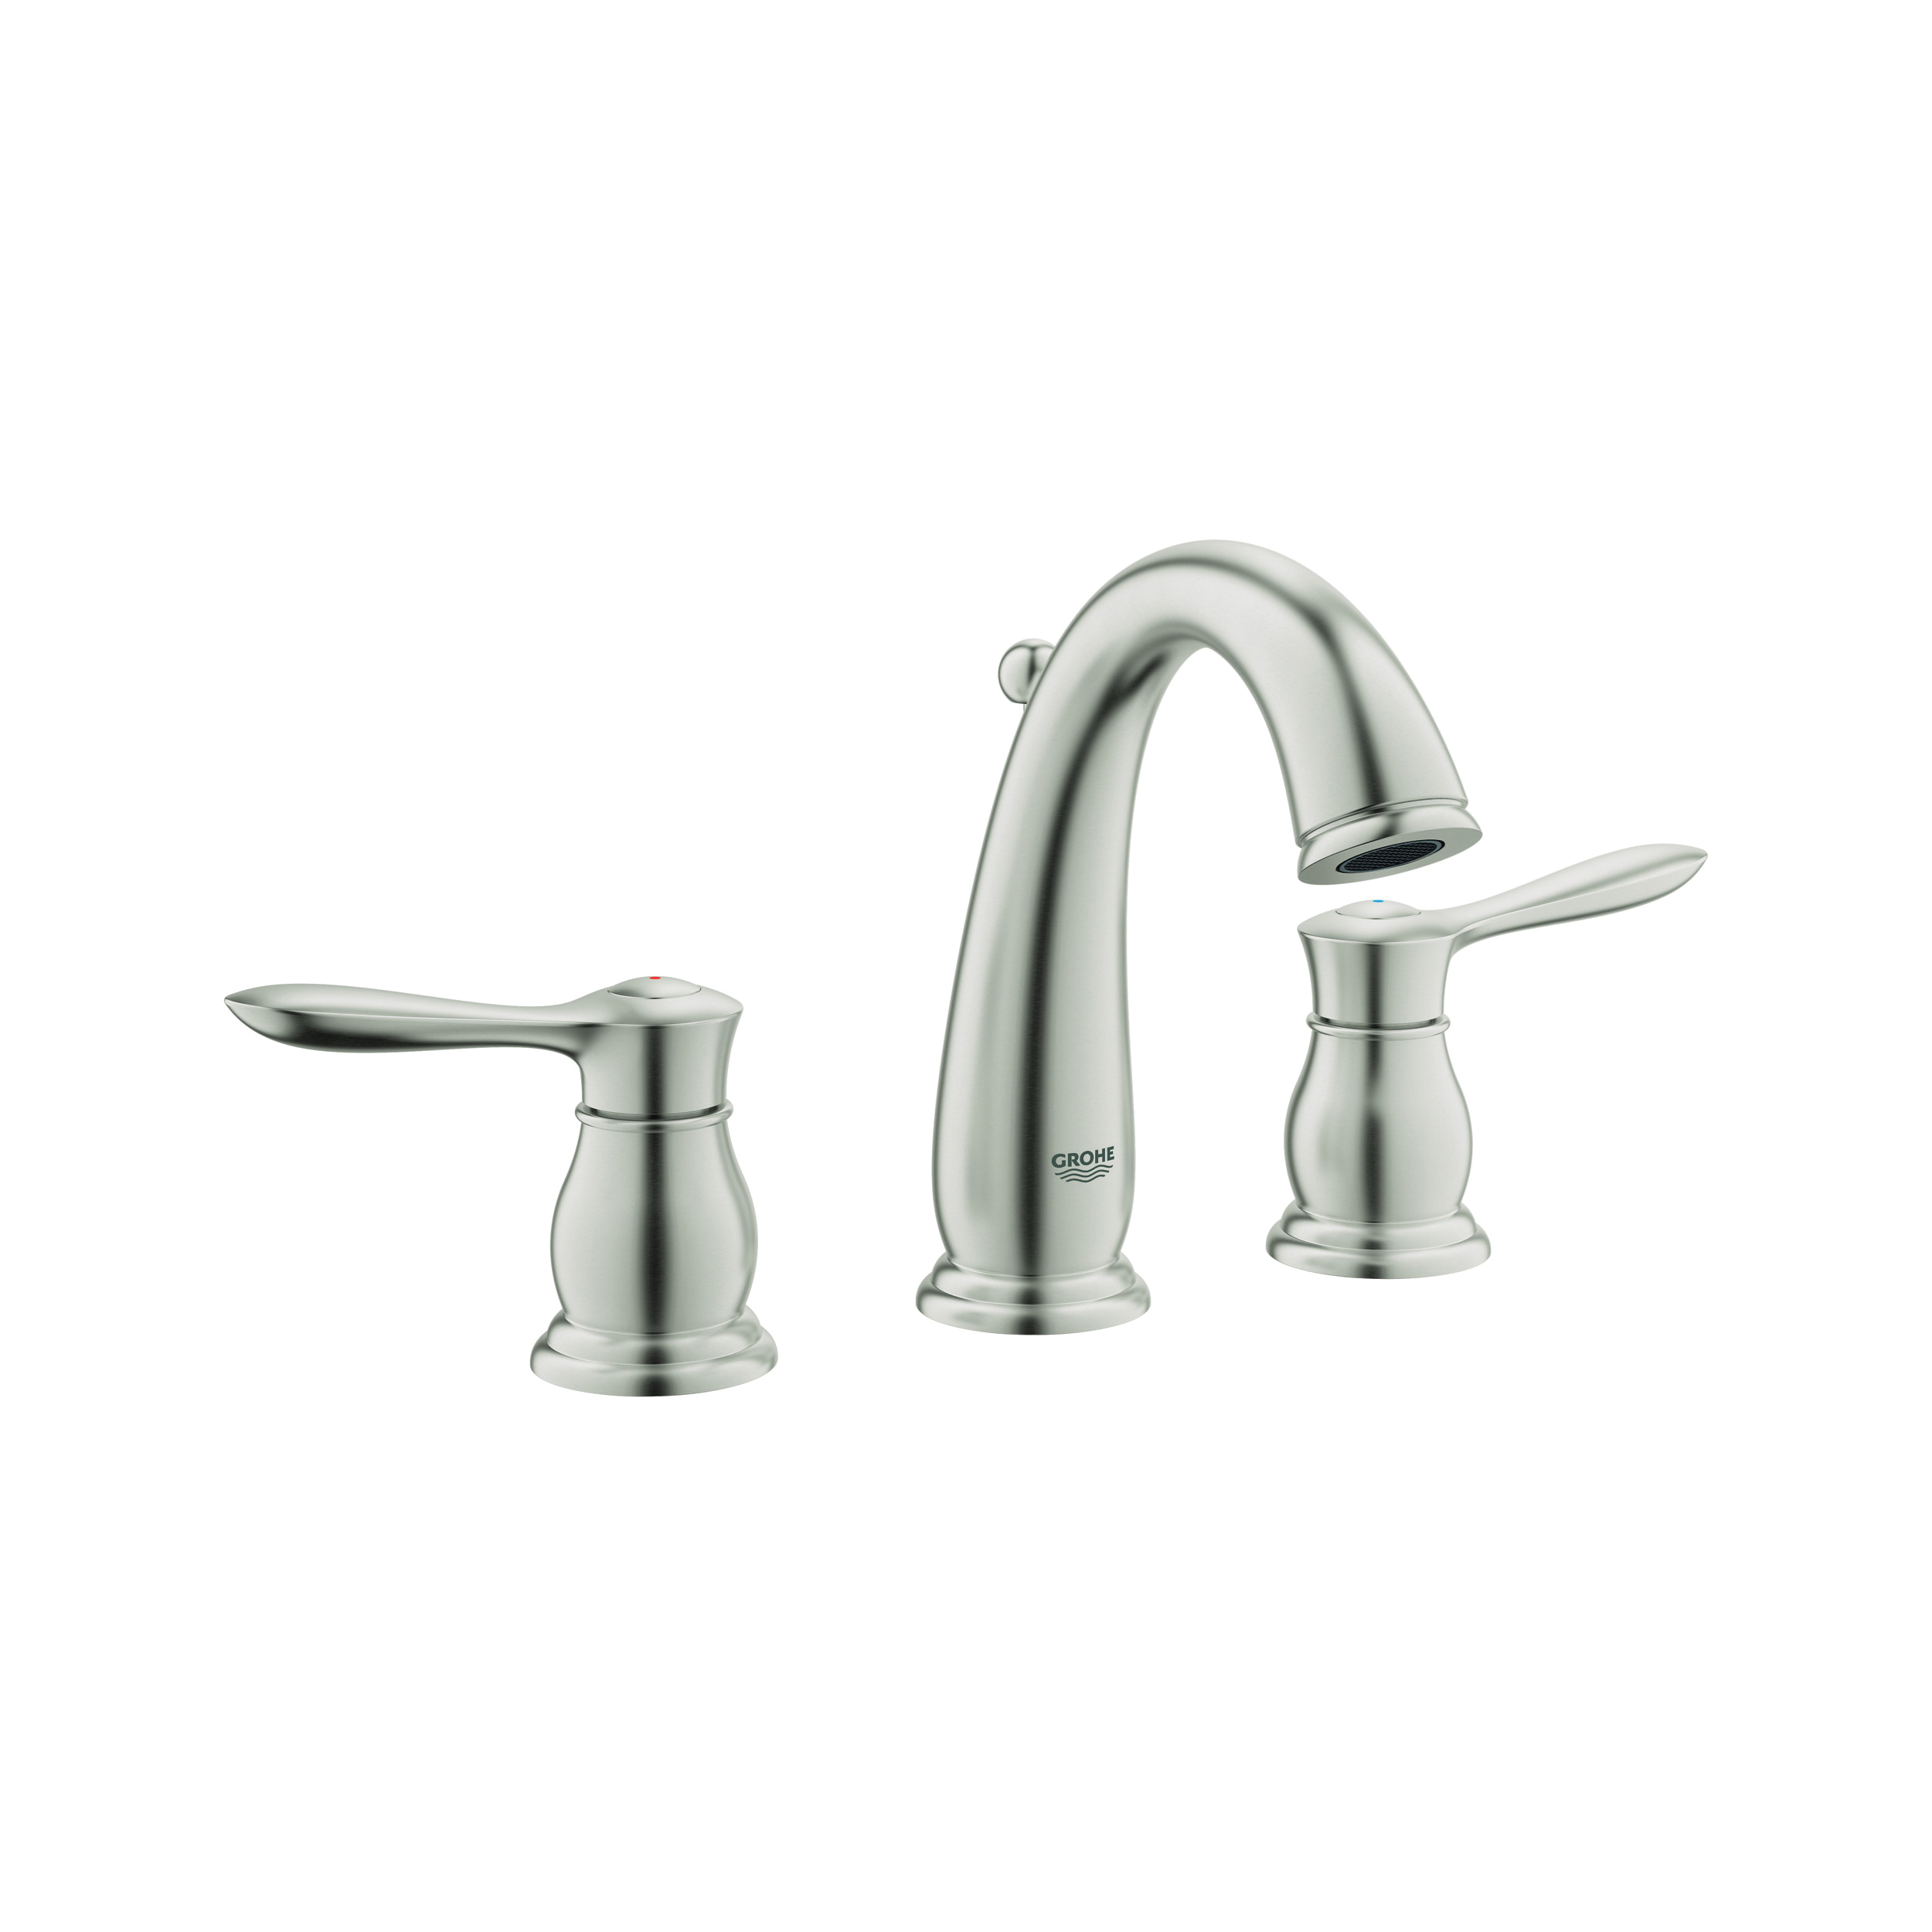 GROHE 20390ENA Parkfield™ Widespread Bathroom Faucet, 1.2 gpm, 4-5/16 in H Spout, 5-1/2 to 17-3/4 in Center, Brushed Nickel, 2 Handles, Pop-Up Drain, Import